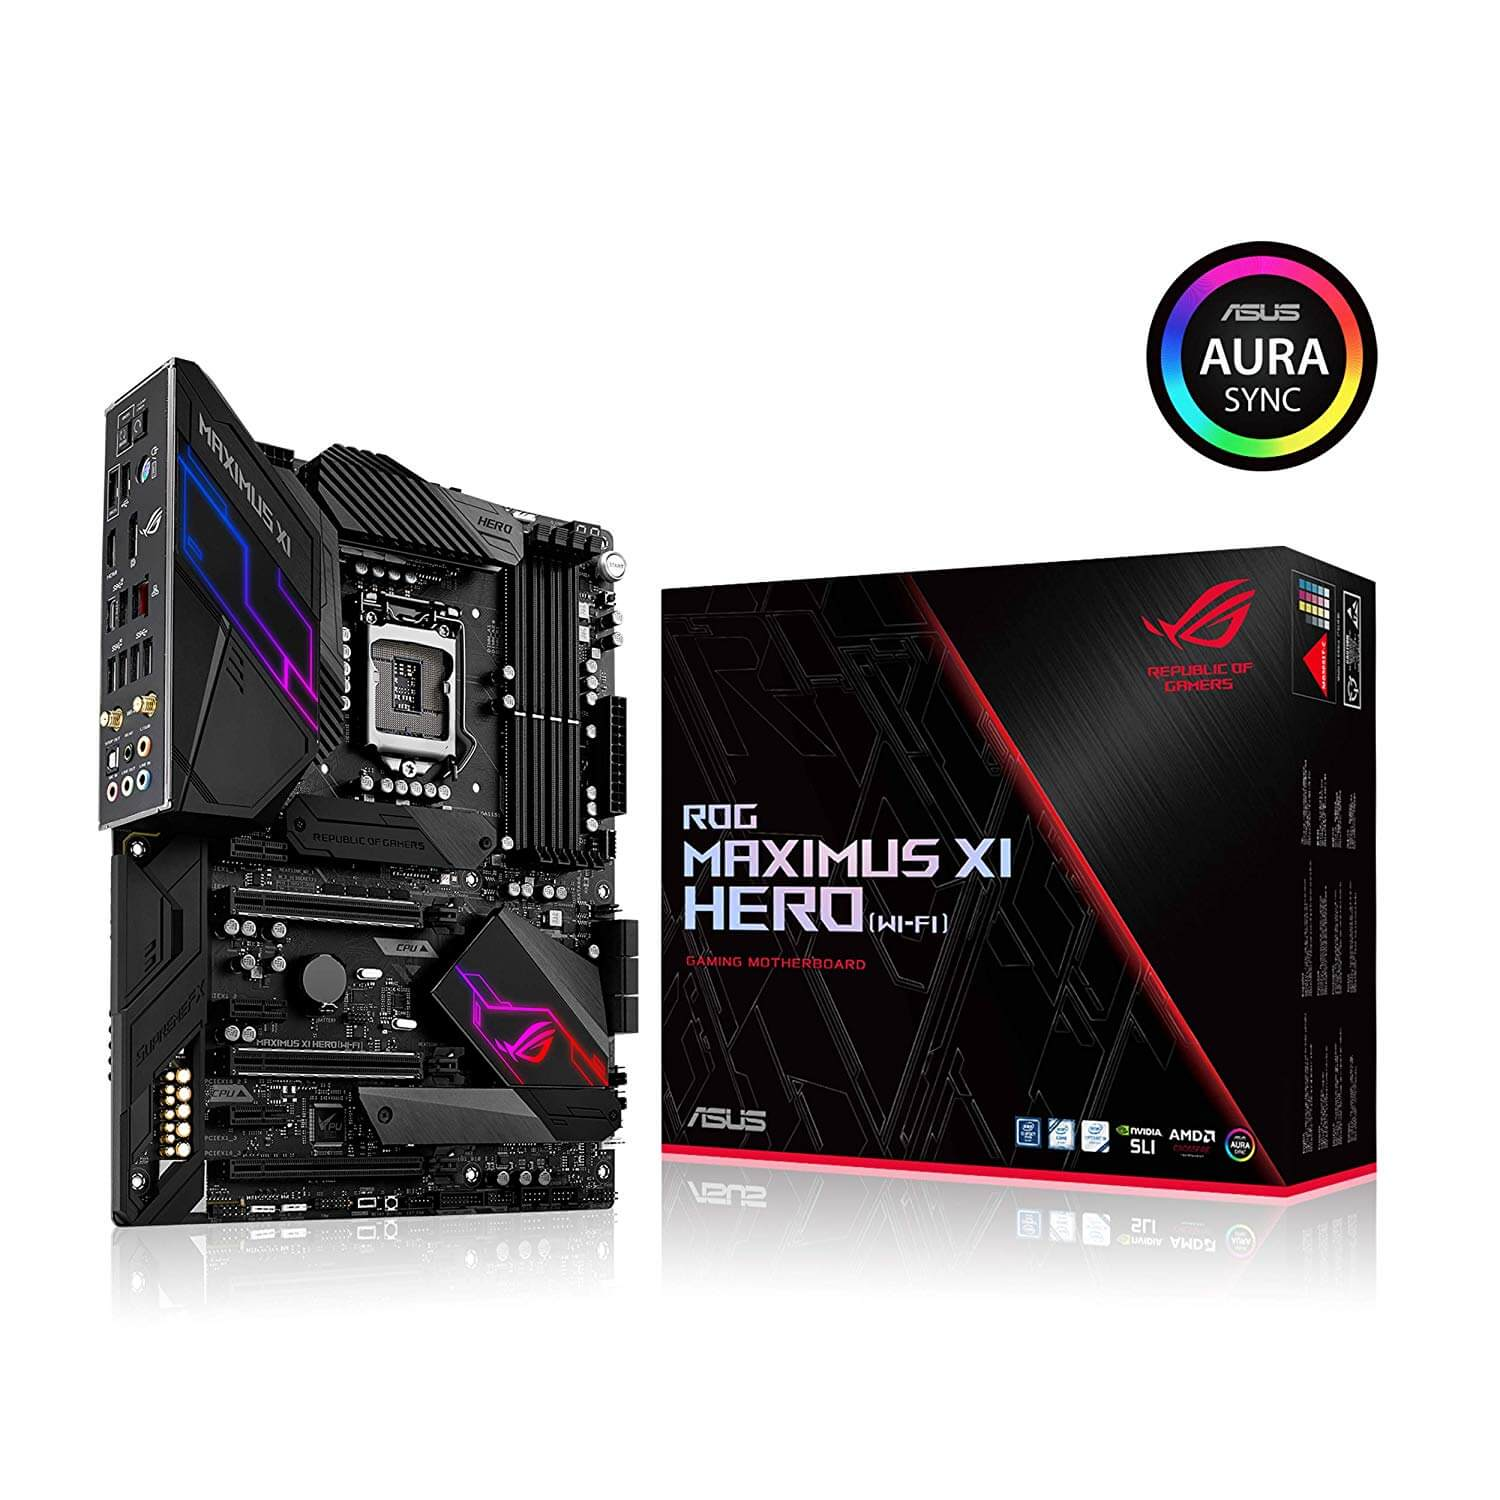 ASUS ROG Maximus XI Hero, HDMI, SLI & X-Fire, USB 3.1 Gen2, USB C, AC WiFi+Bluetooth